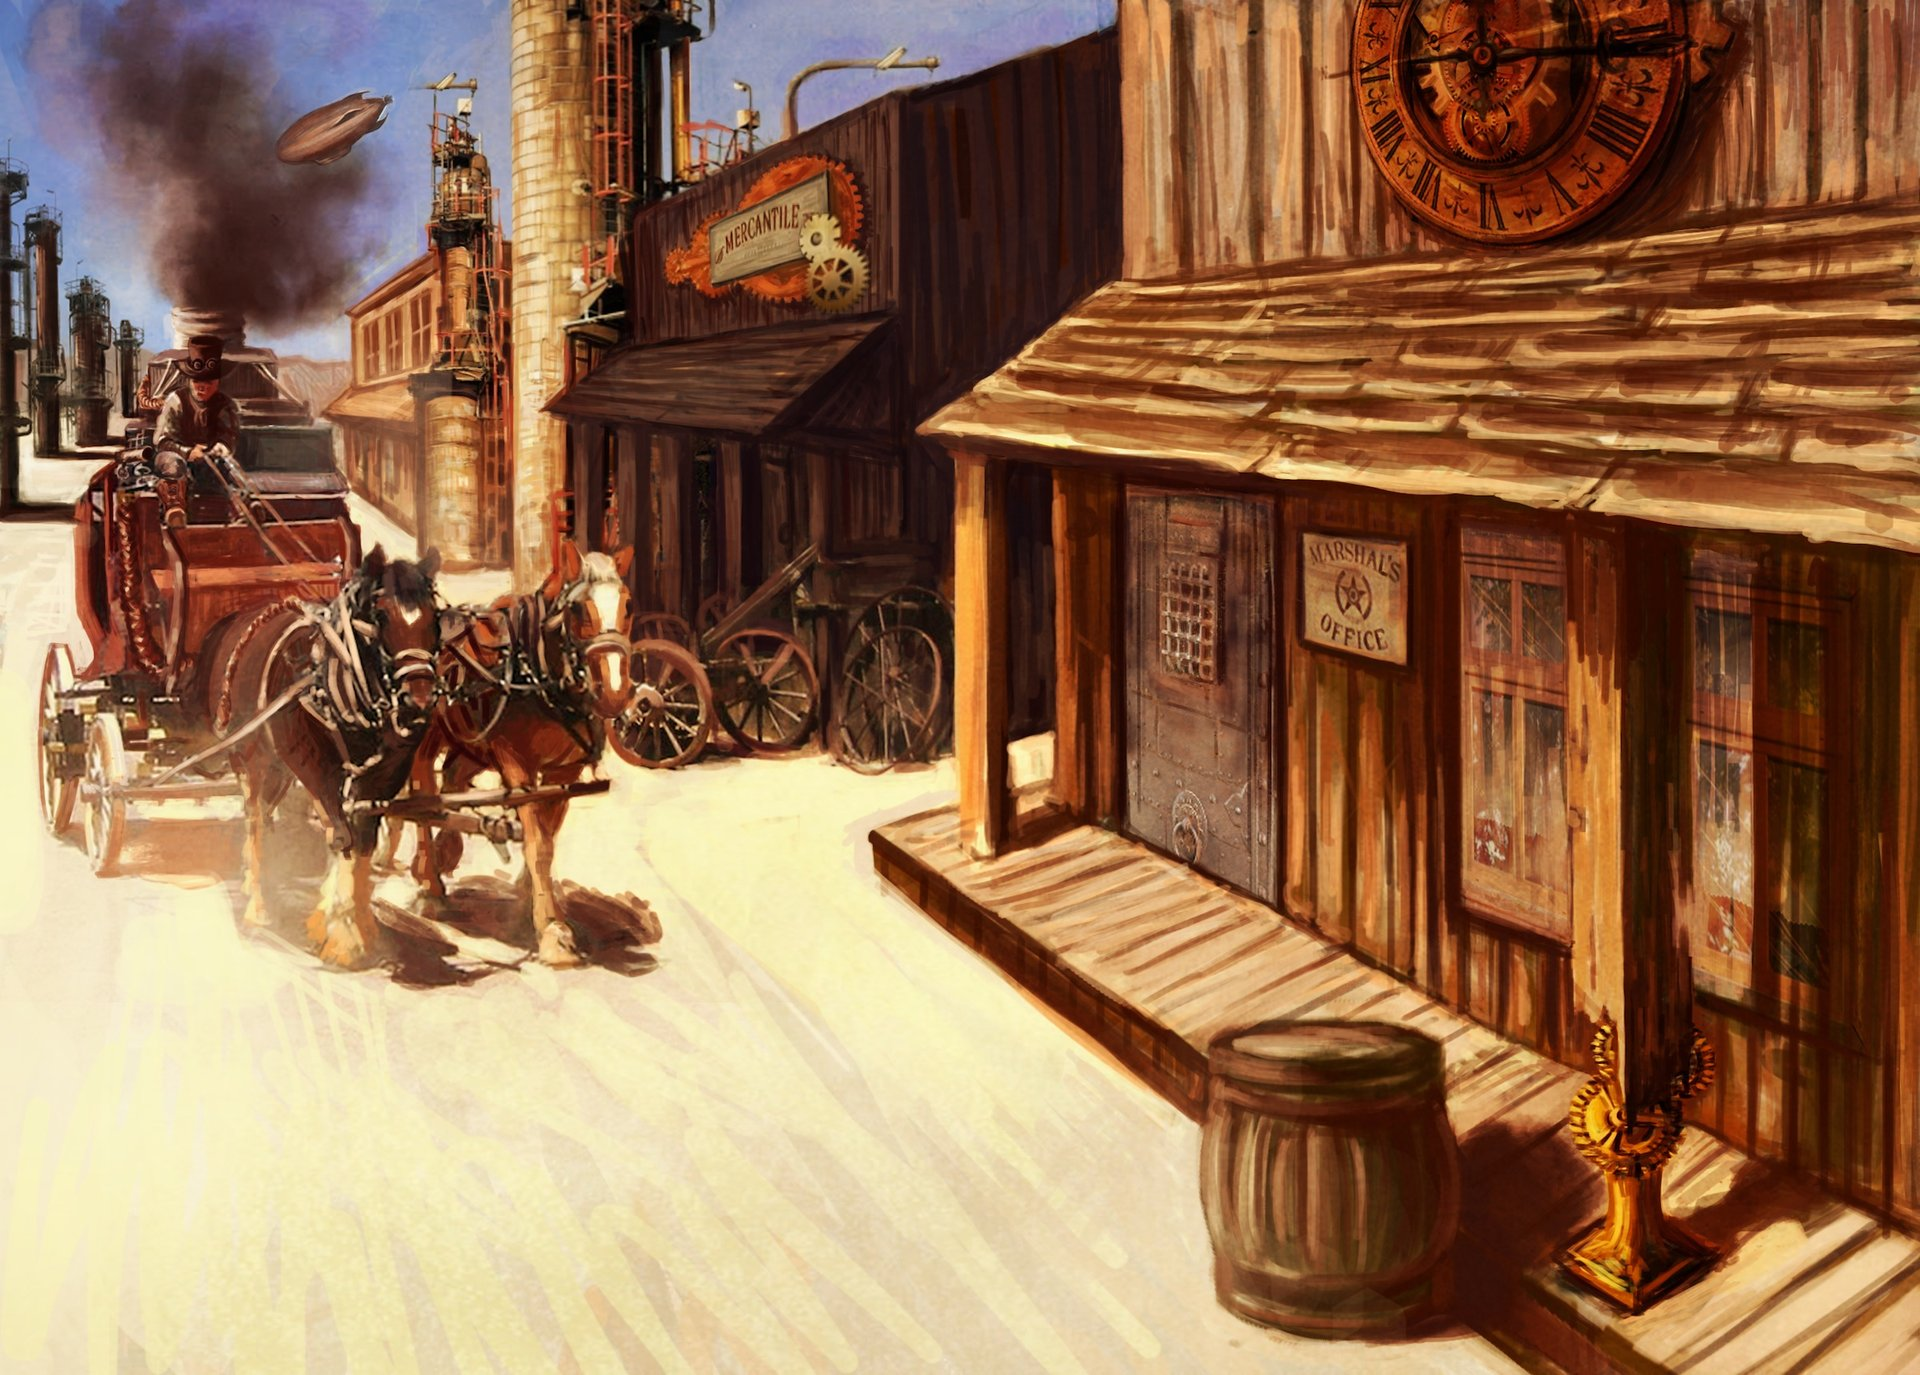 ArtStation - Steampunk Western Town, Christy Tortland